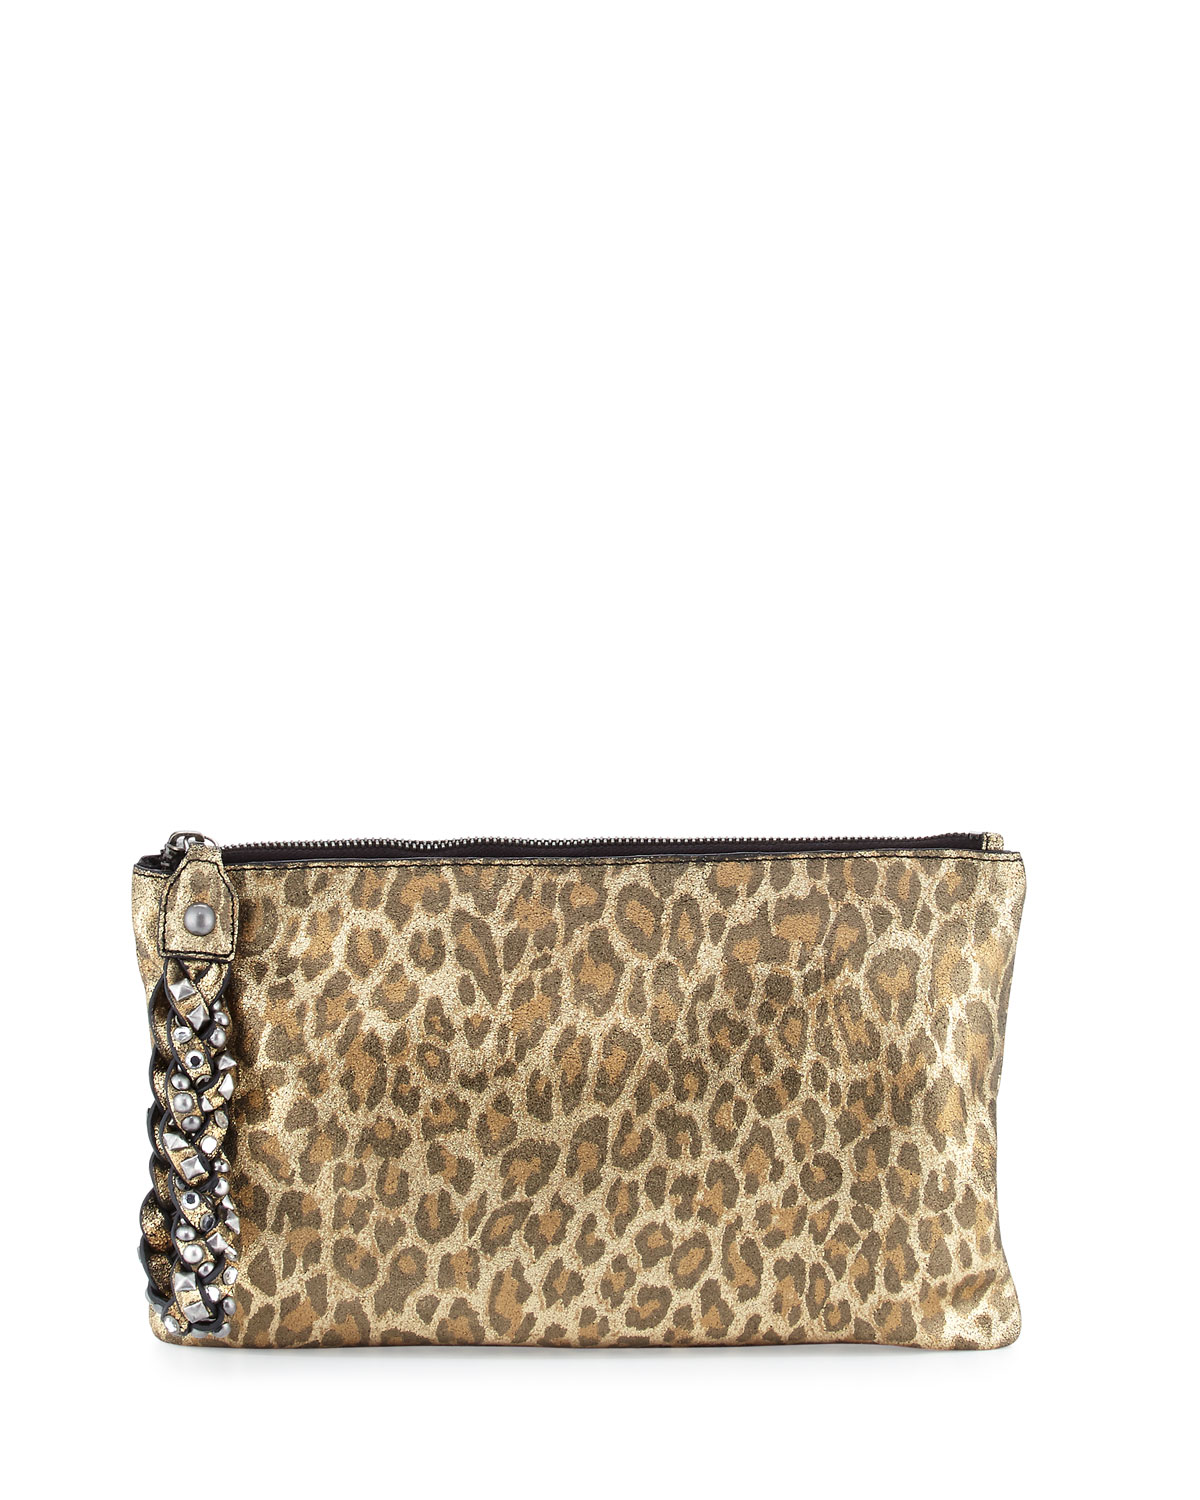 Janis Leopard-Print Leather Clutch Bag, Gold